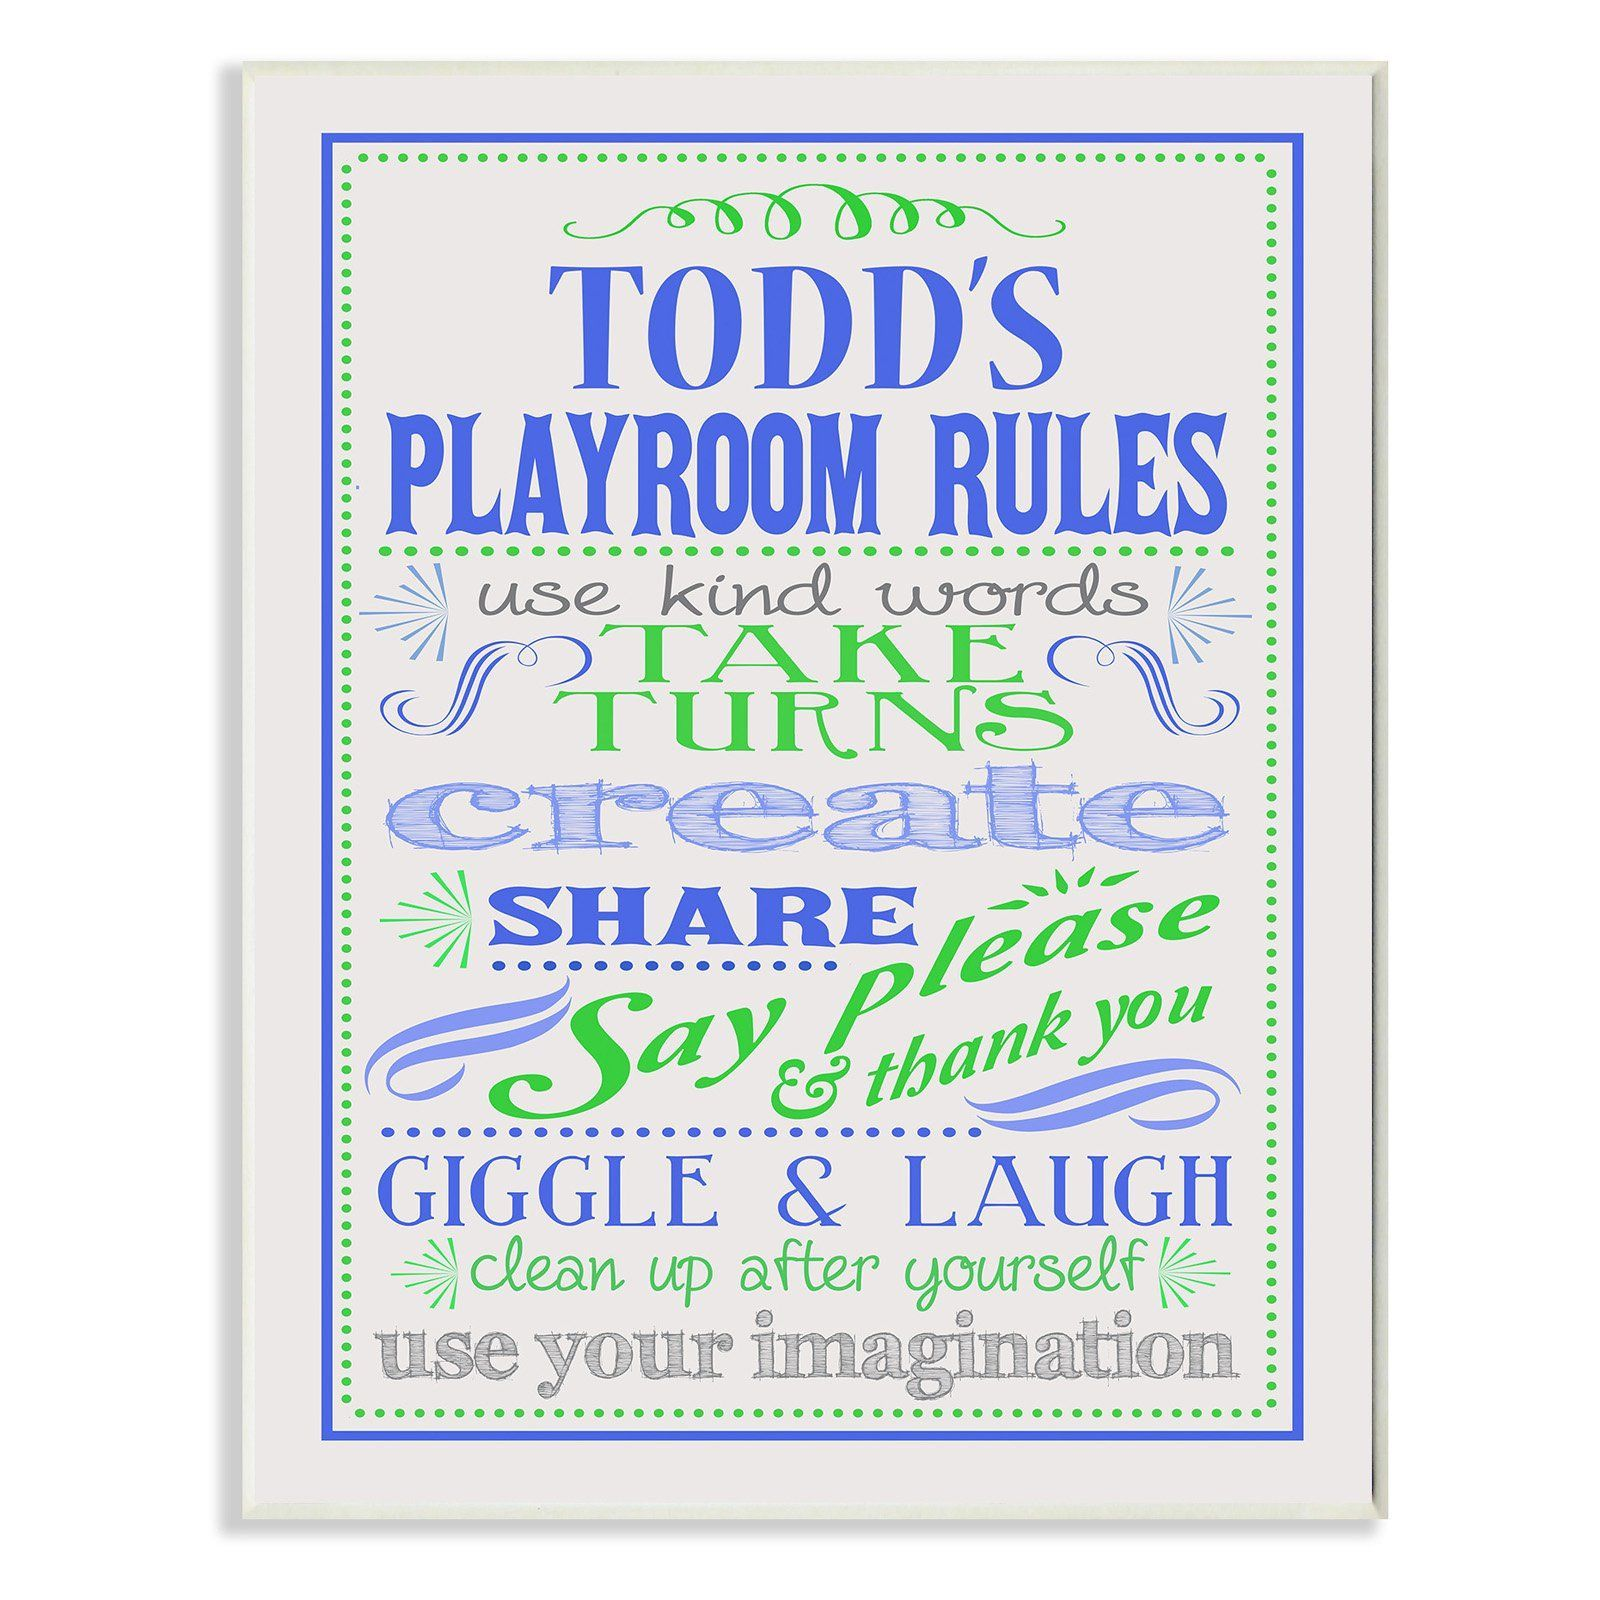 Stupell decor personalized blue and green playroom rules wall plaque